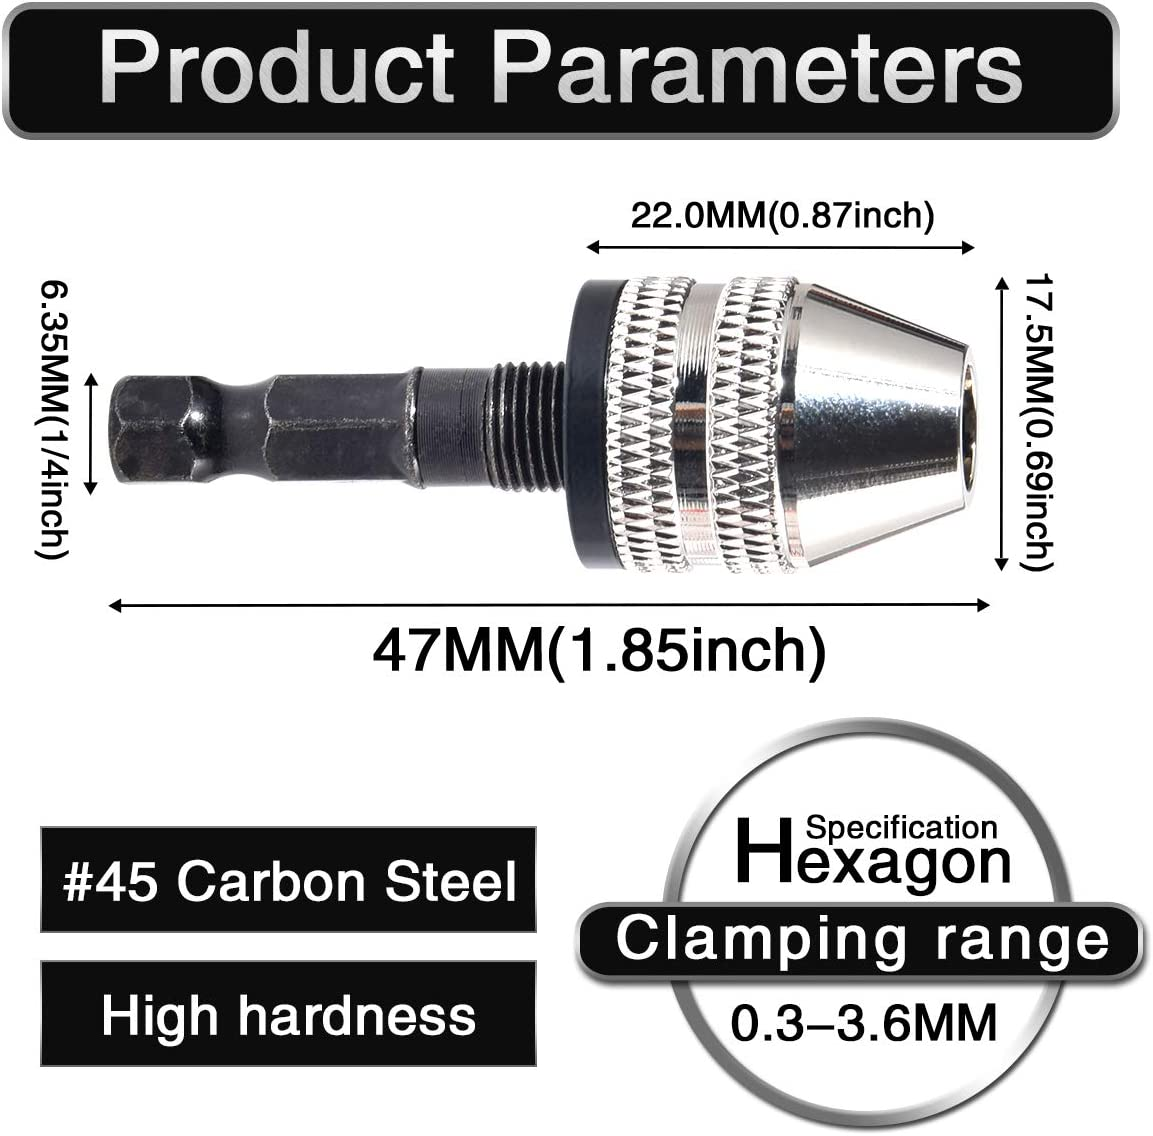 HOEN Keyless Mini 3-Jaw Drill Chuck Screwdriver Adapter with Quick-Change 1//4 Hex Shank to Hold Straight-Shank 0.3-3.6mm Drill Bits Milling Cutters for Micro-Production or Medical Industry